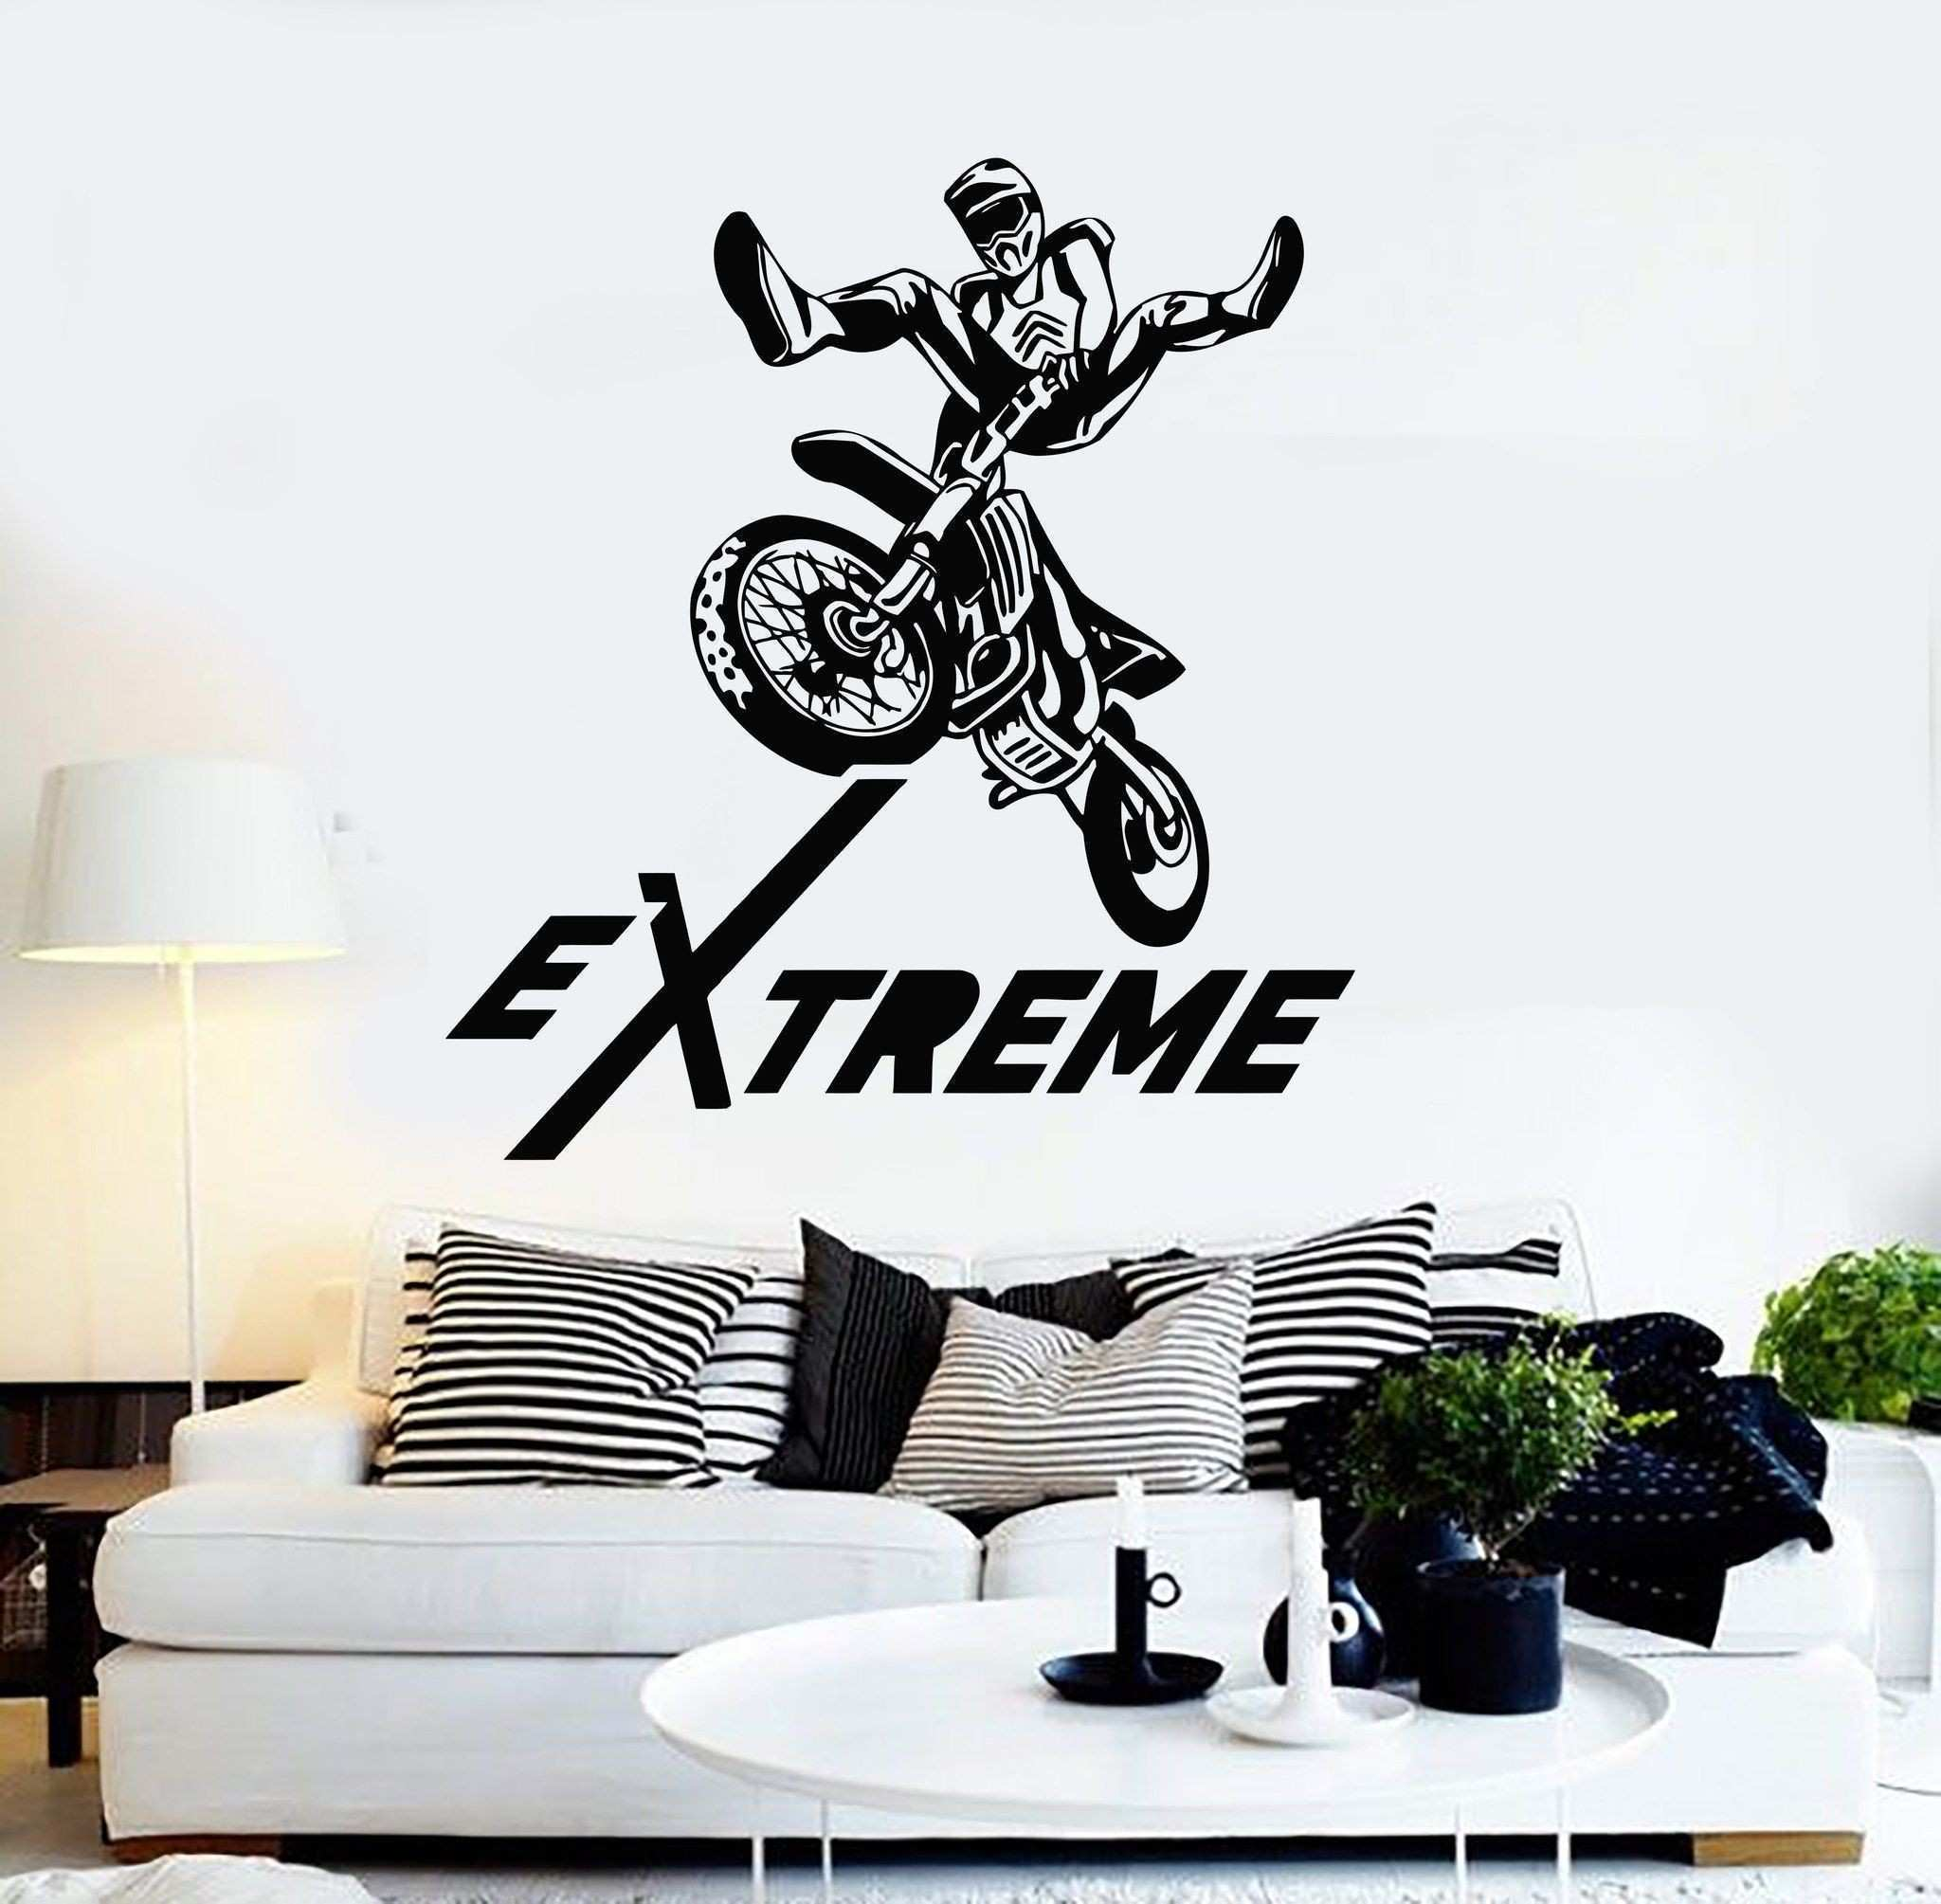 Vinyl Wall Decal Extreme Motorcycle Sport Races Trials Freestyle